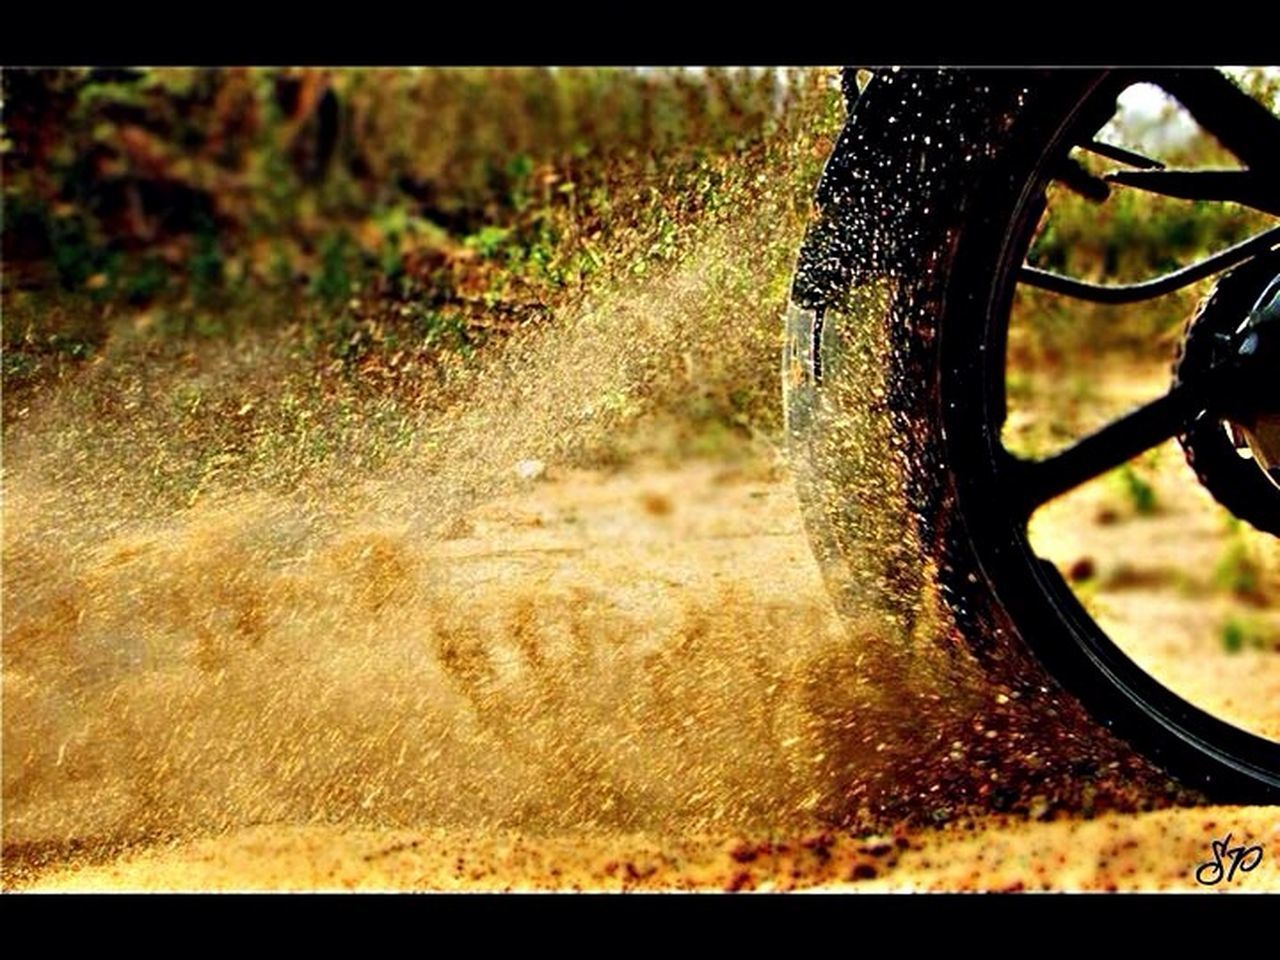 field, agriculture, grass, outdoors, wheel, water, no people, day, nature, close-up, spraying, irrigation equipment